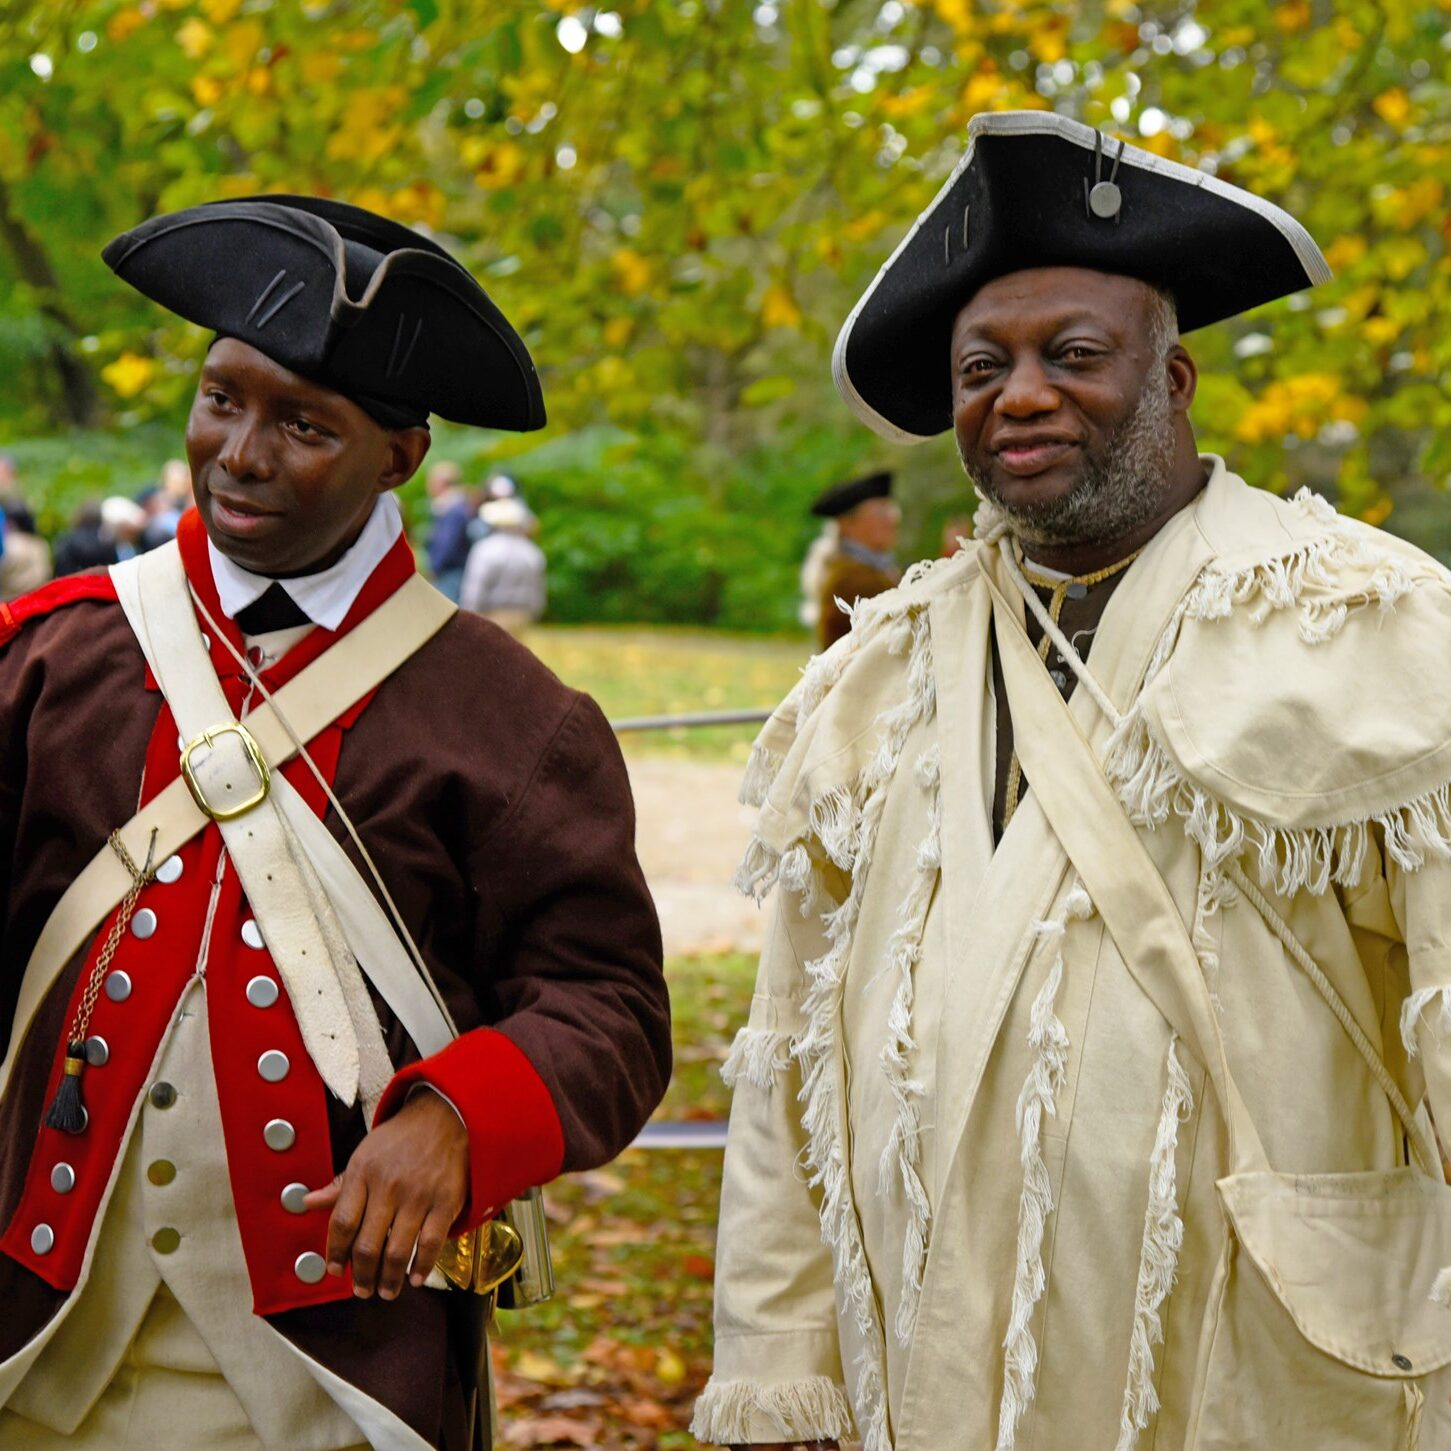 Two men pose for photograph while participating in a Revolutionary War Reinactment